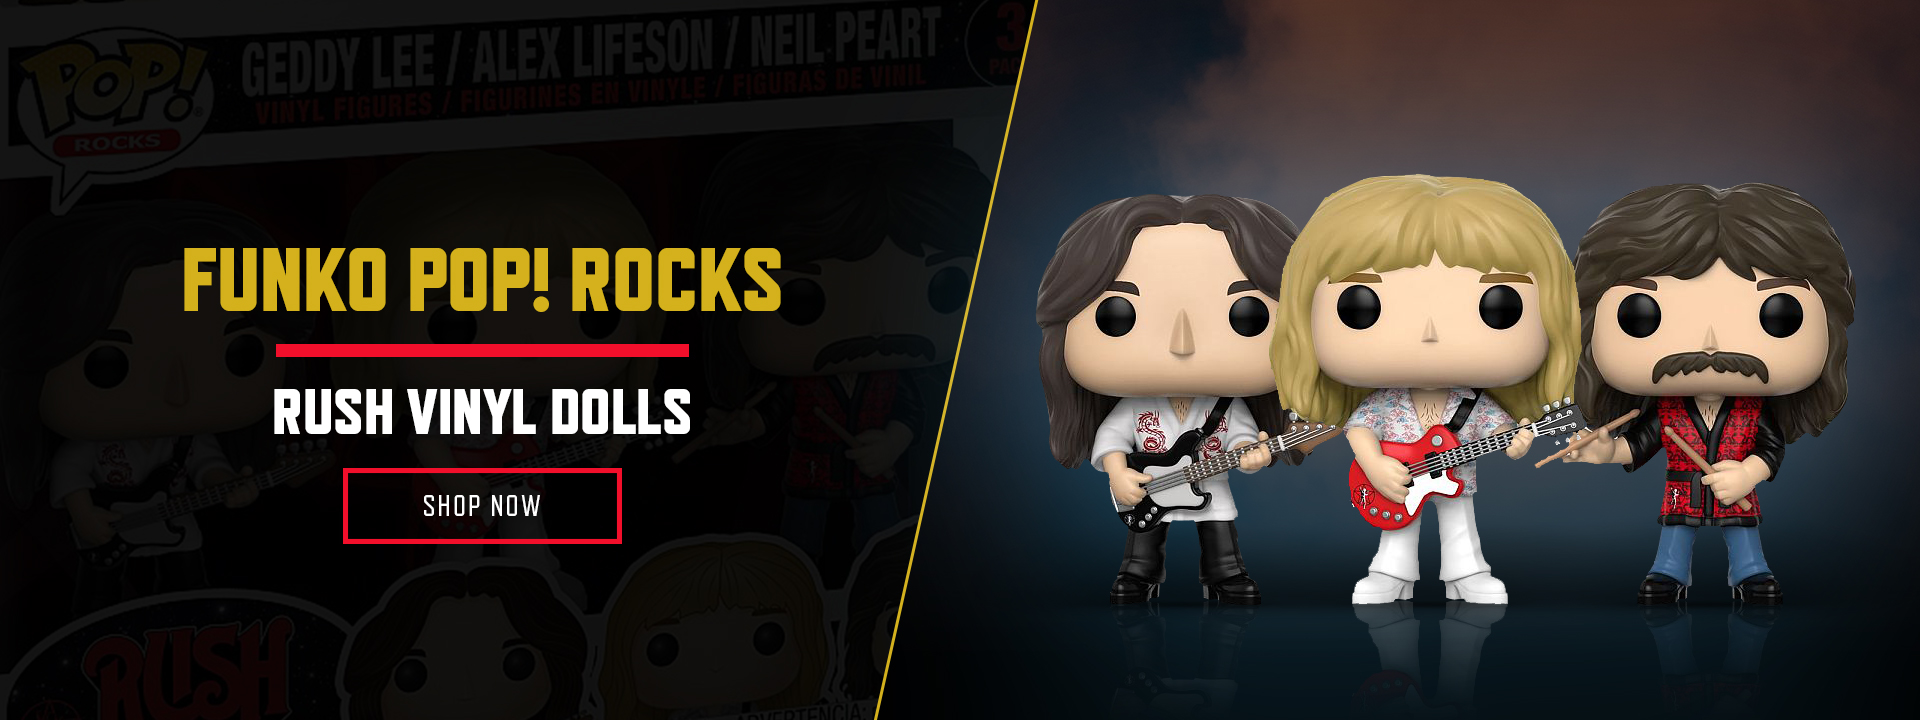 FUNKO POP ROCKS - RUSH VINYL DOLLS